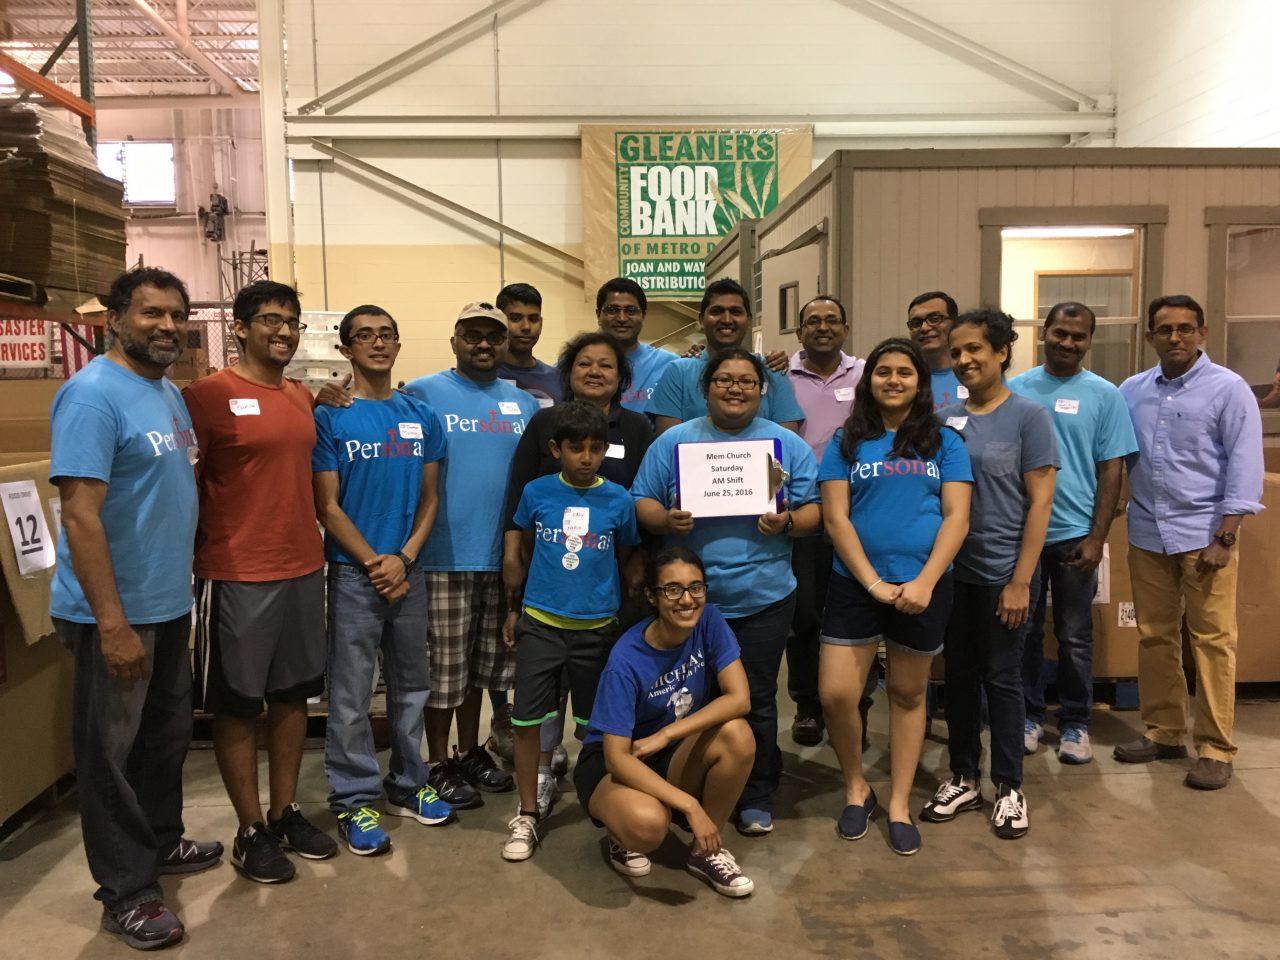 Volunteering at Gleaners June 2016